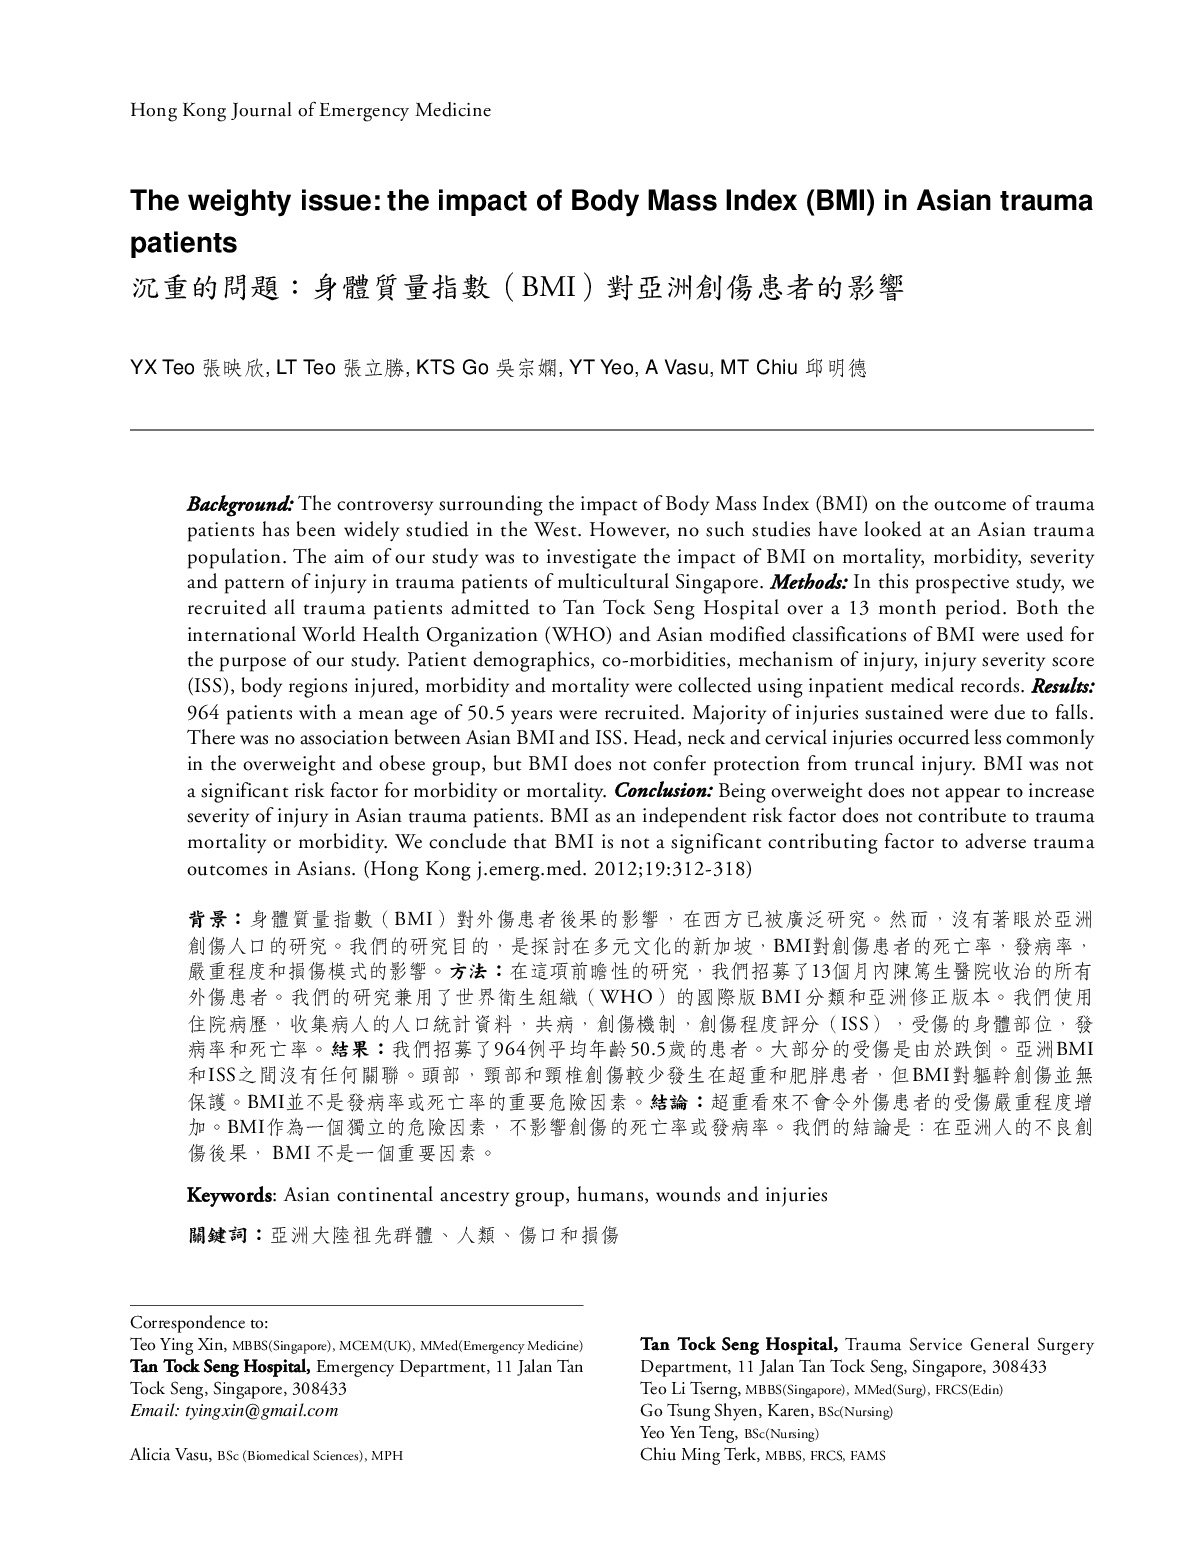 The weighty issue: the impact of Body Mass Index (BMI) in Asian trauma patients